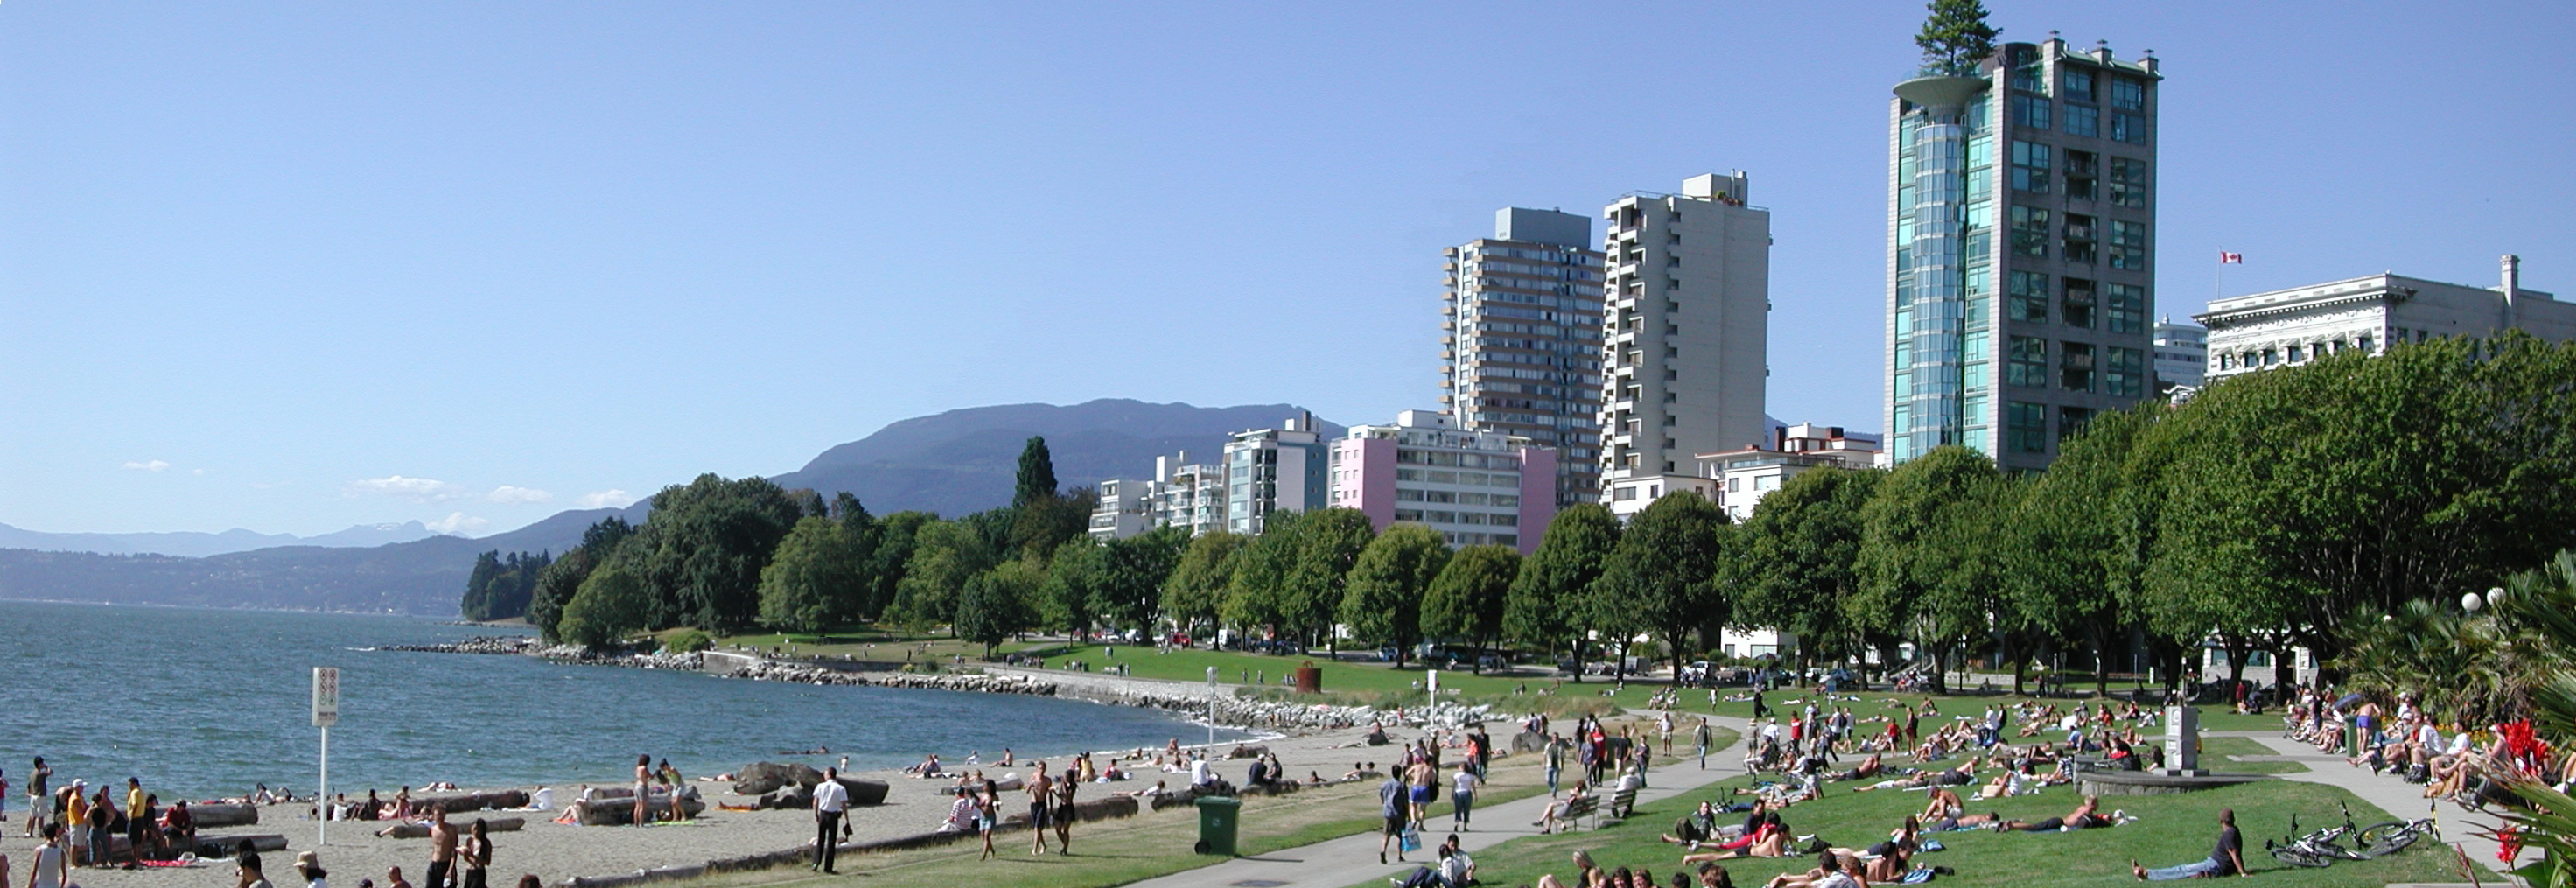 City Park Water And Skate Park Kelowna Bc